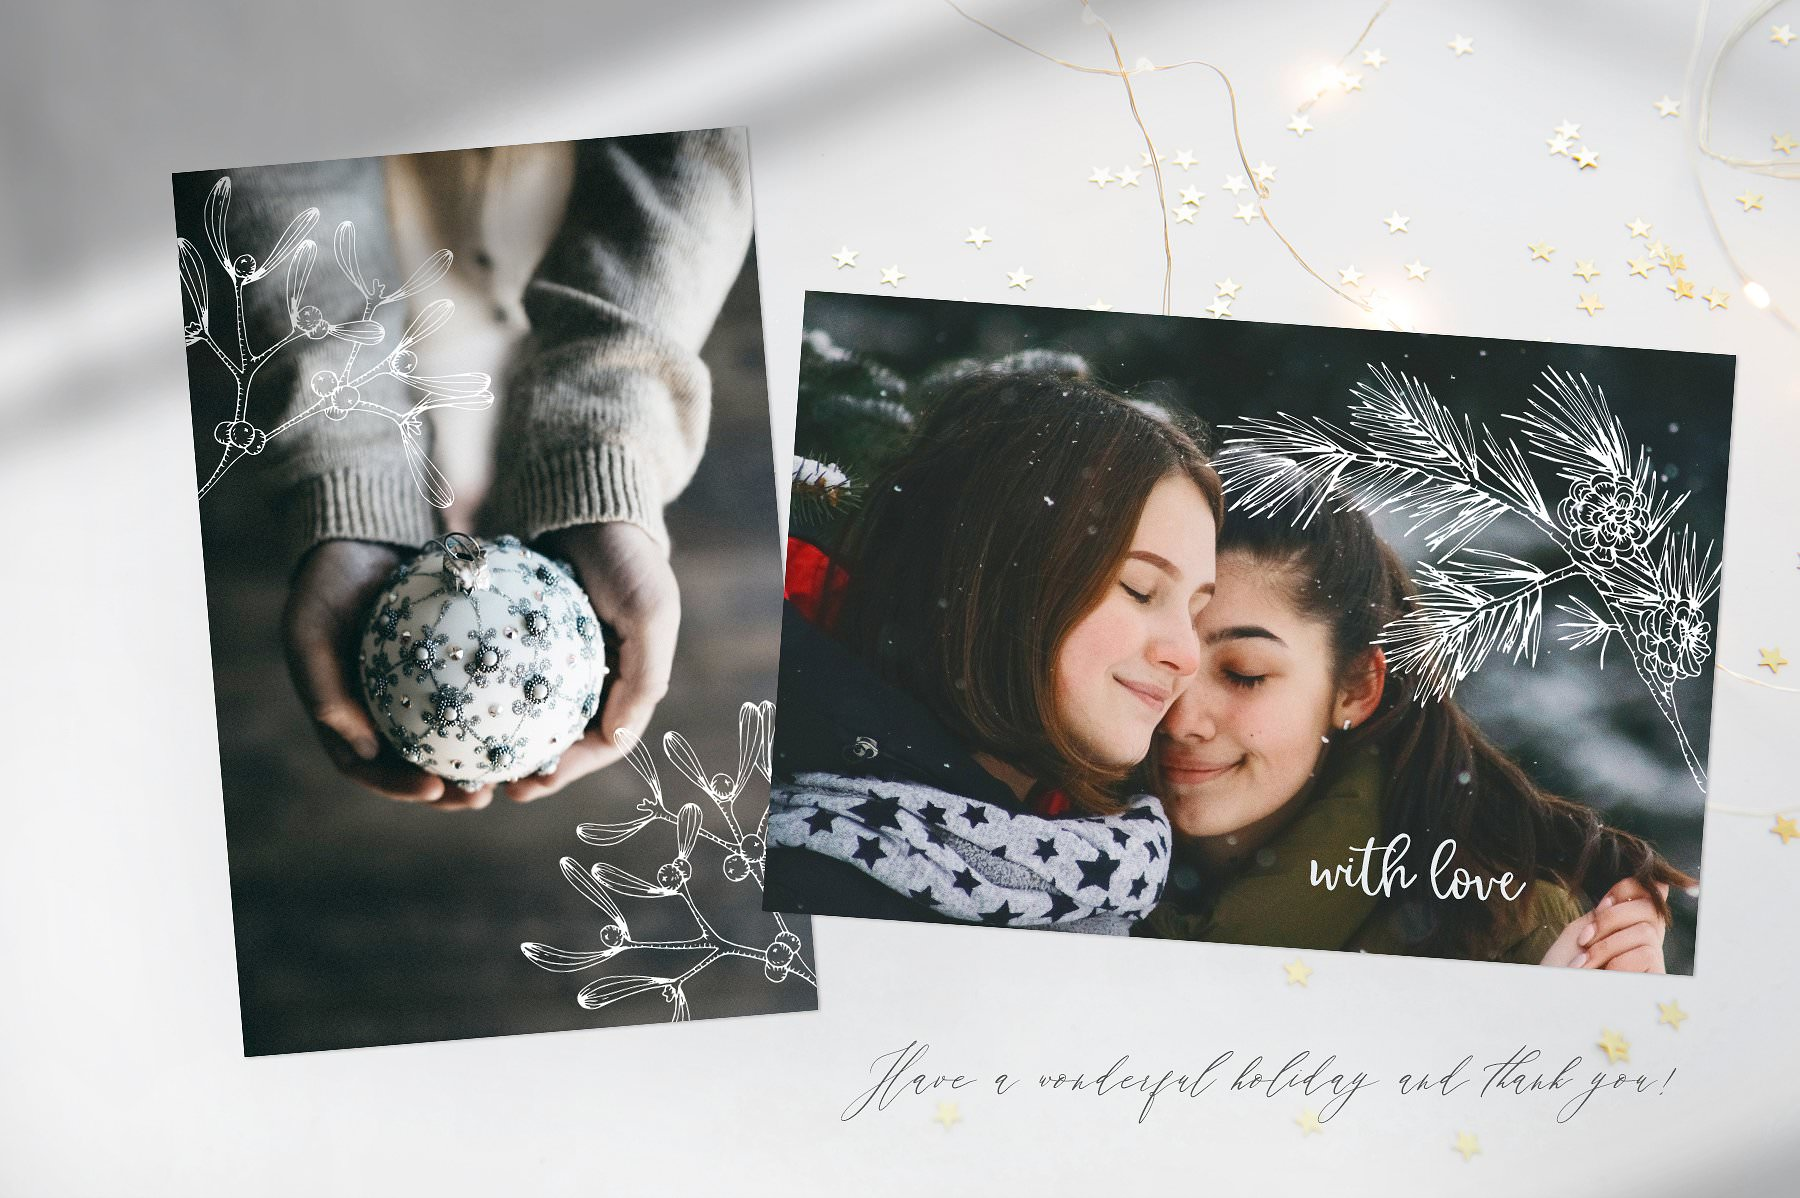 Photography decorated with elegant Christmas graphics.